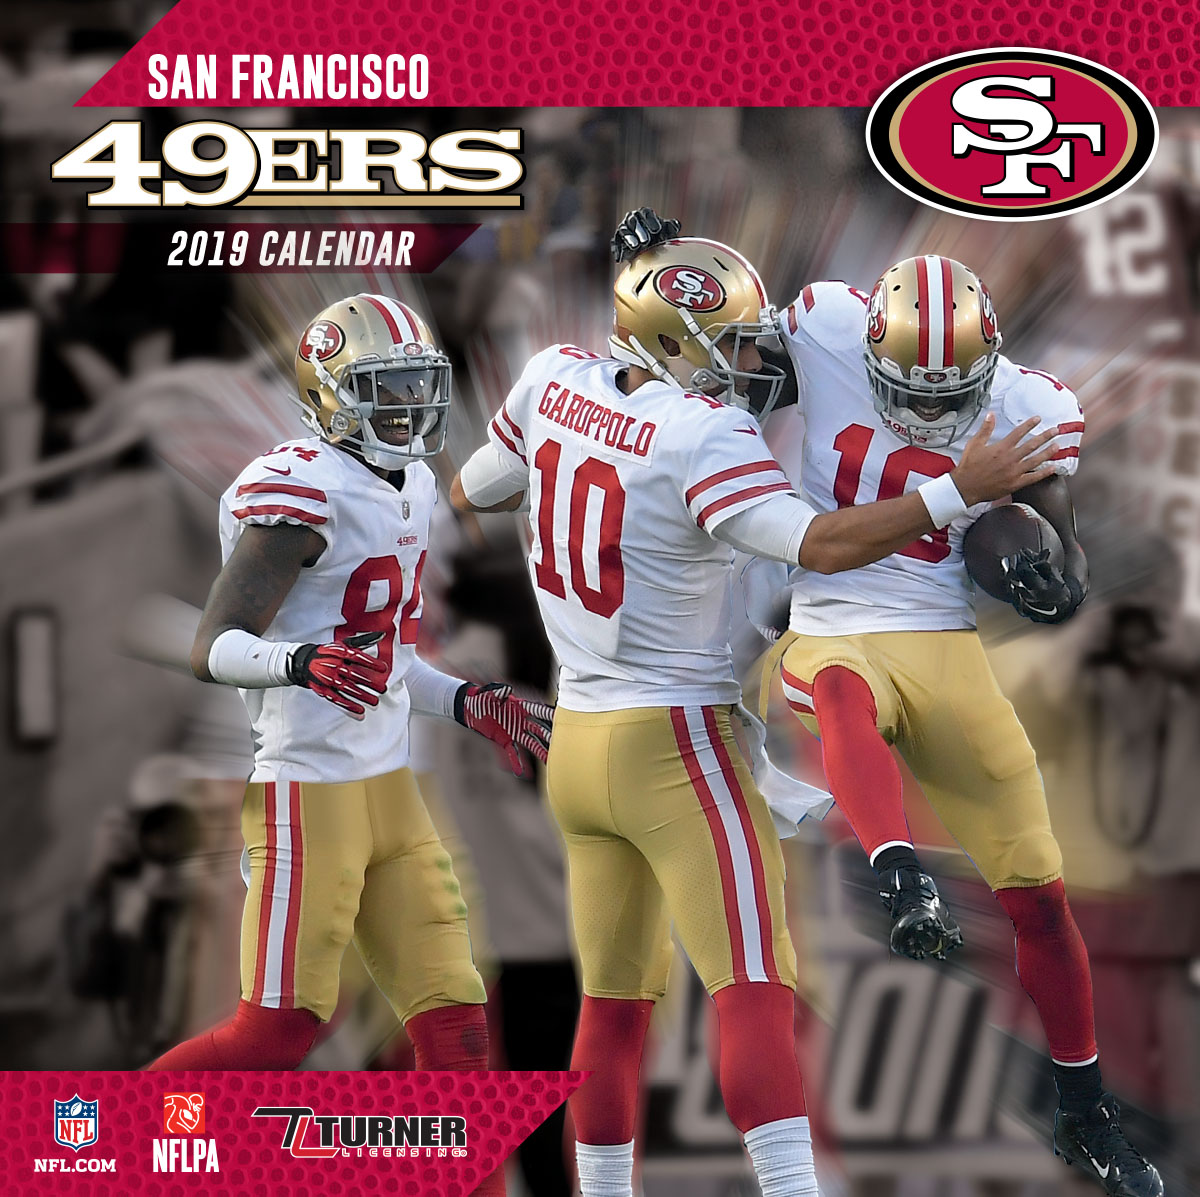 2019 12X12 TEAM WALL CALENDAR, SAN FRANCISCO 49ERS